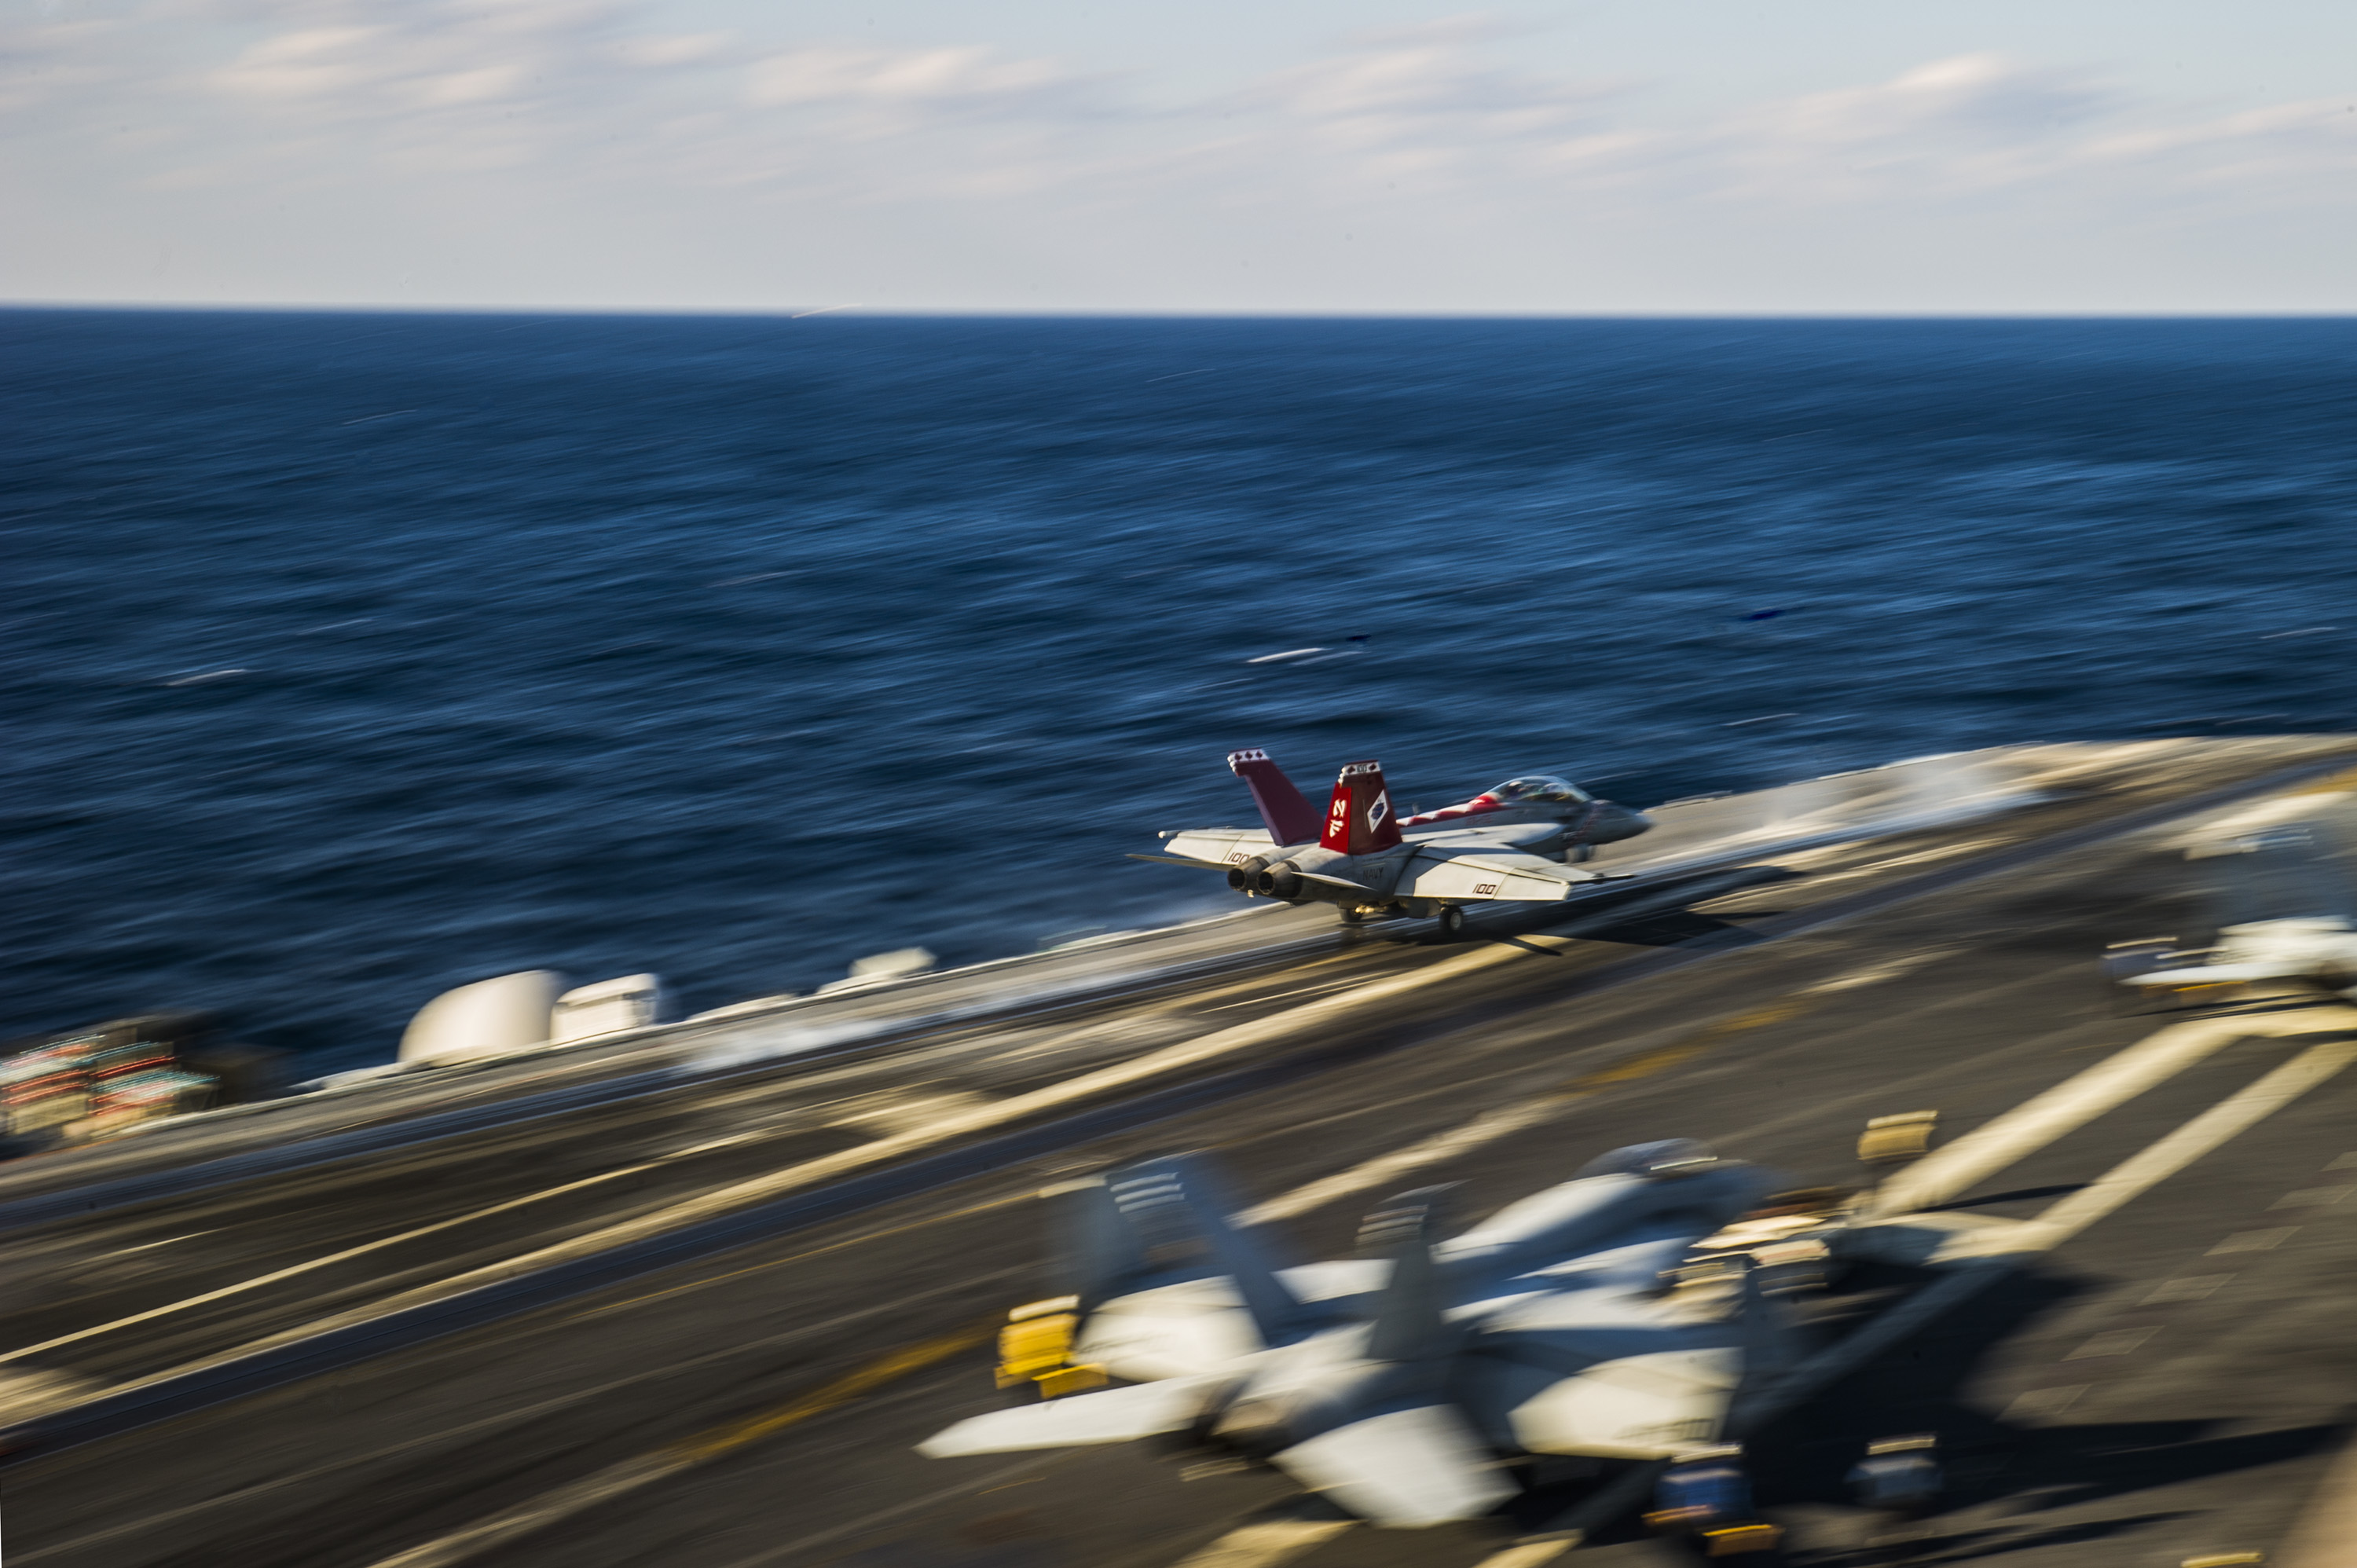 An F/A-18F Super Hornet from the Diamondbacks of Strike Fighter Squadron (VFA) 102 launches from the flight deck of the Nimitz-class aircraft carrier USS George Washington (CVN-73). US Navy Photo